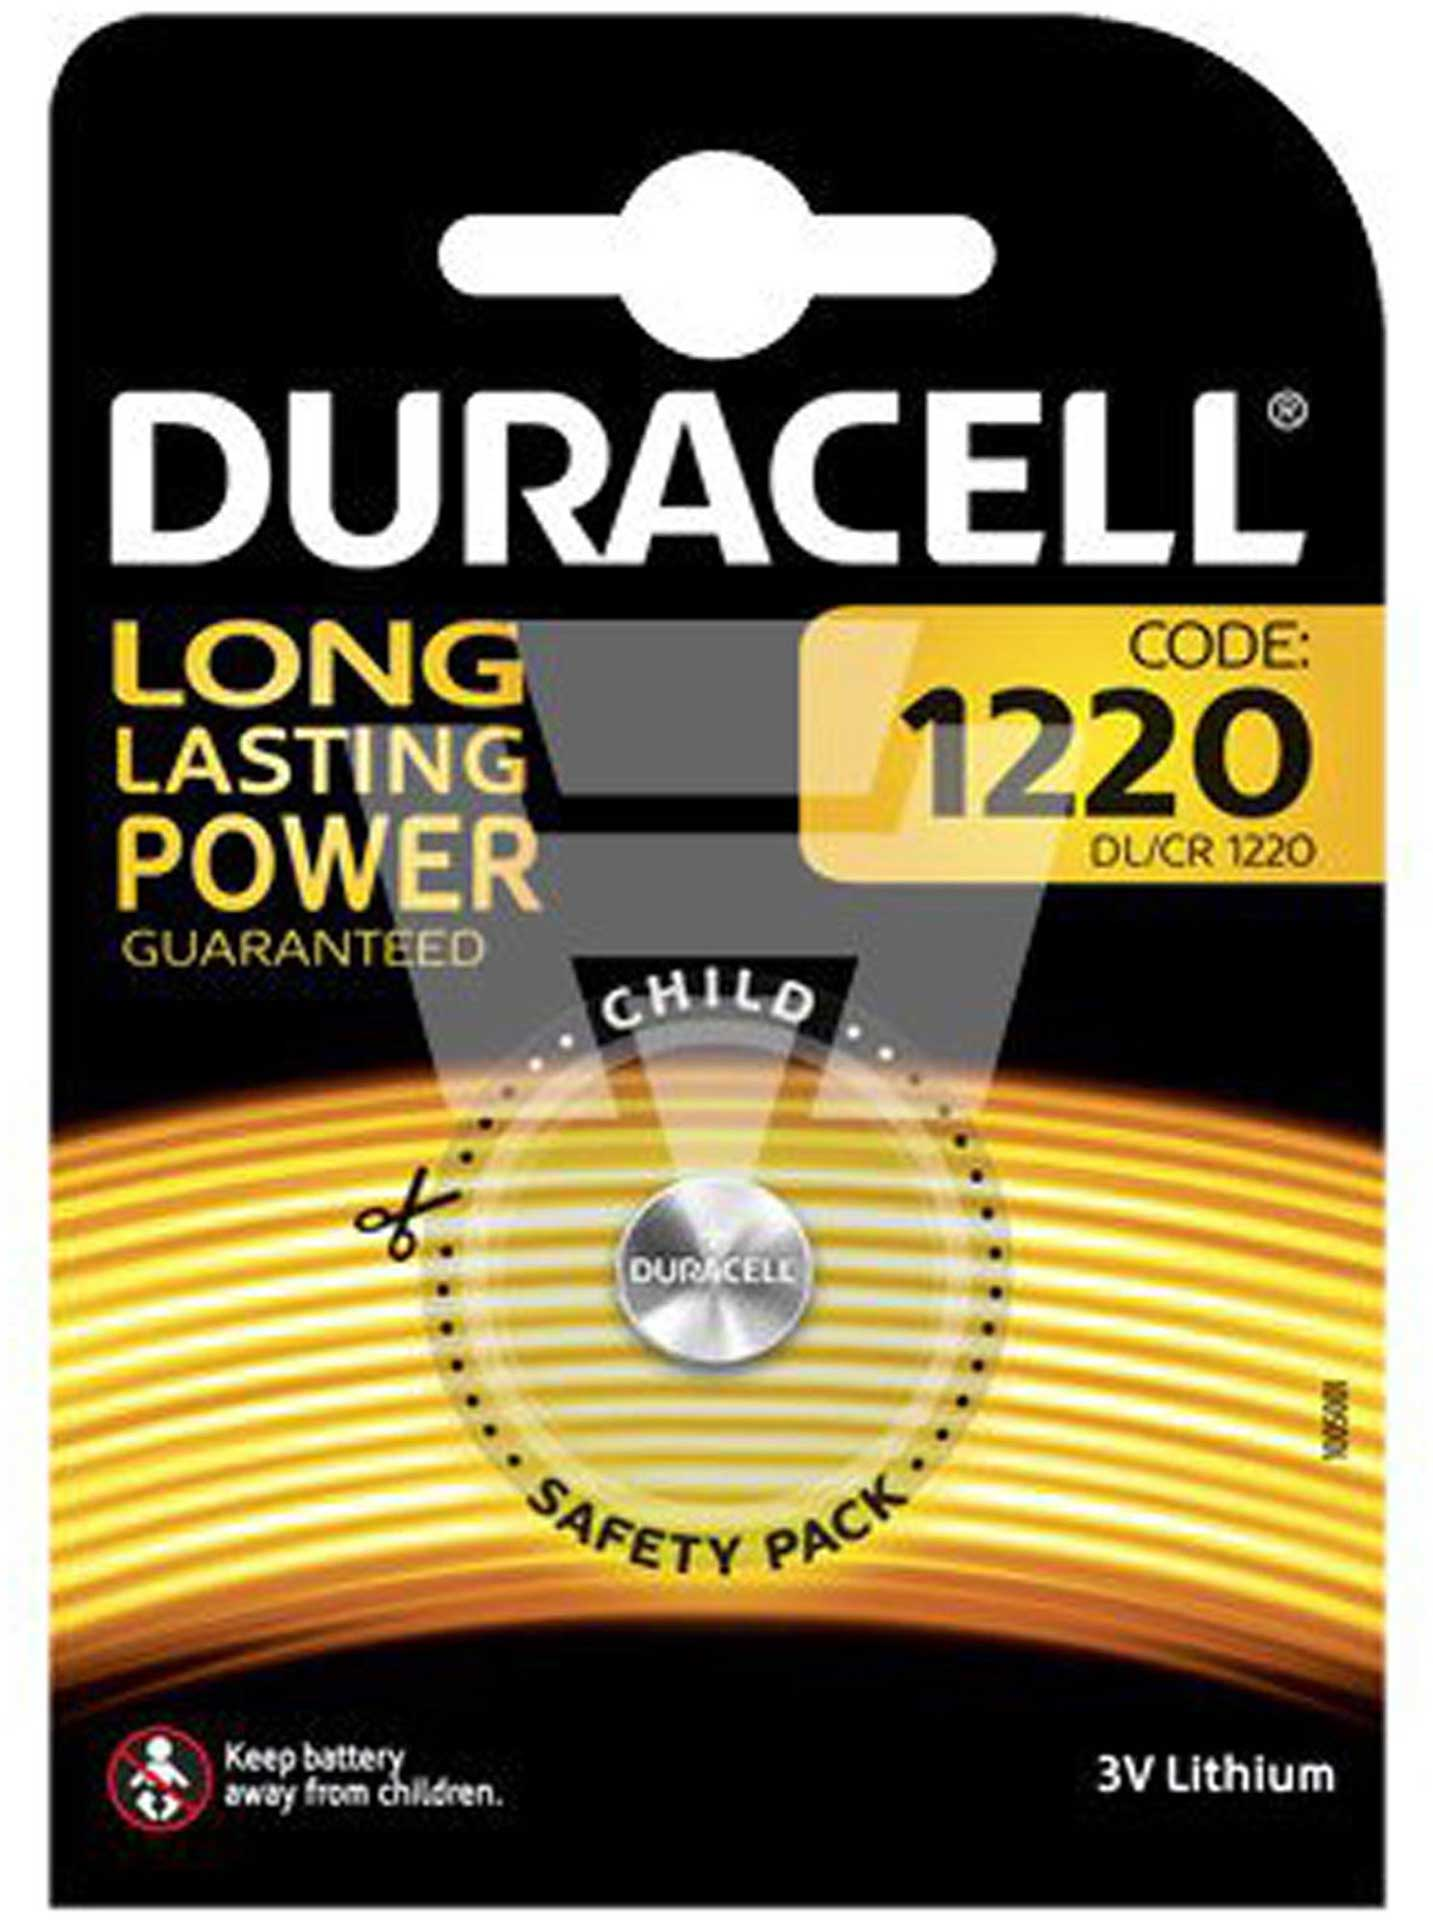 DURACELL LITHIUM BUTTON CELL BATTERY CR1220 EP 3 V 1PCS 35MAH LITHIUM